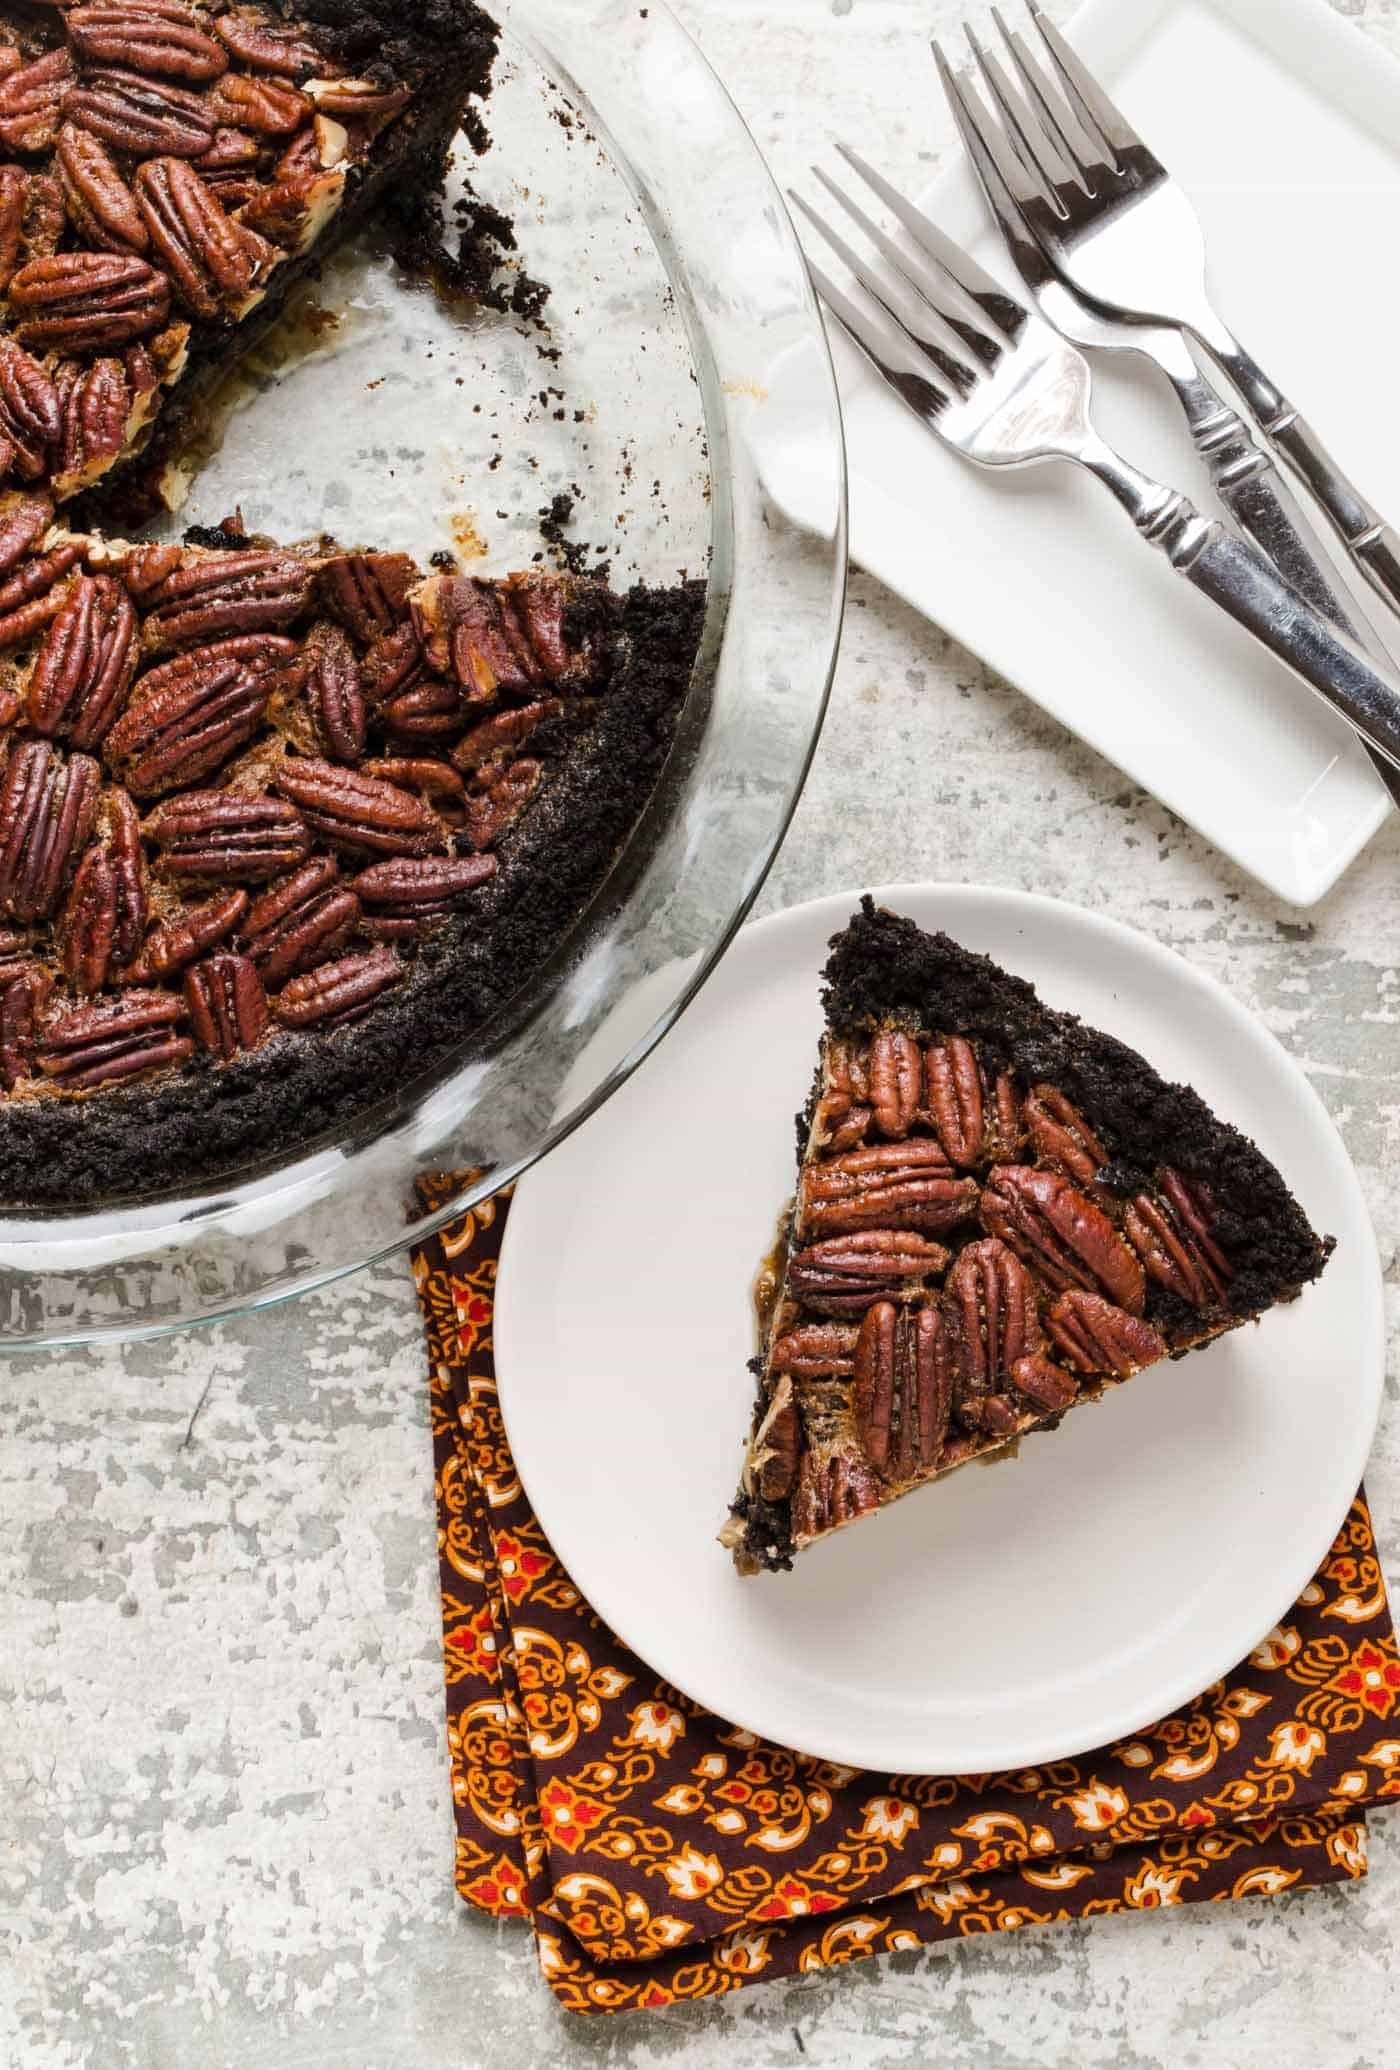 Add this recipe for make-ahead Bourbon Pecan Pie with Chocolate Cookie Crust to your holiday baking list. Your guests will love it!